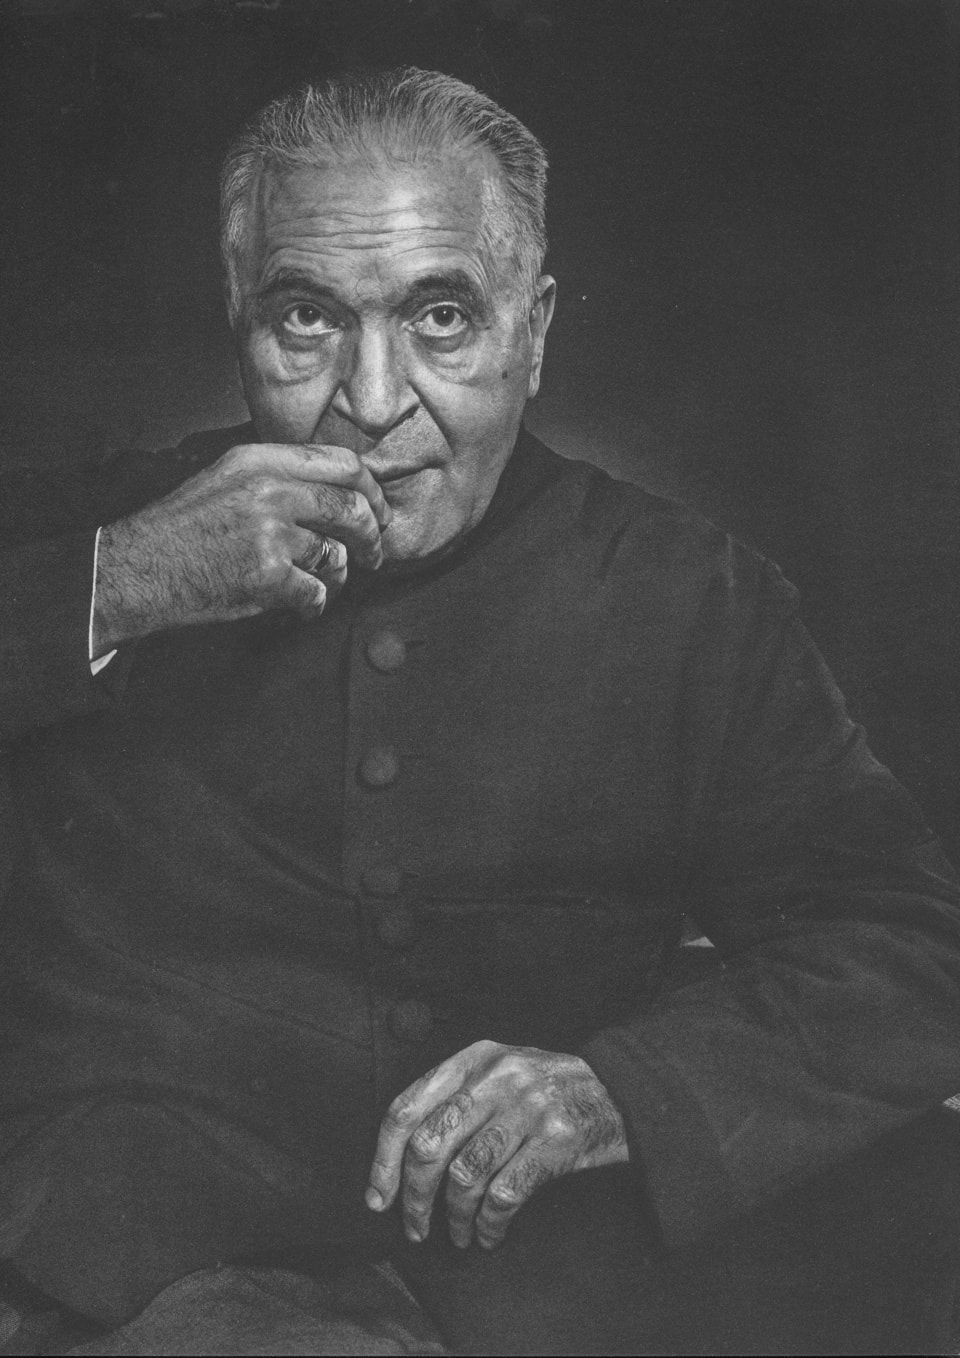 Bruno Walter by Yousuf Karsh, 1956